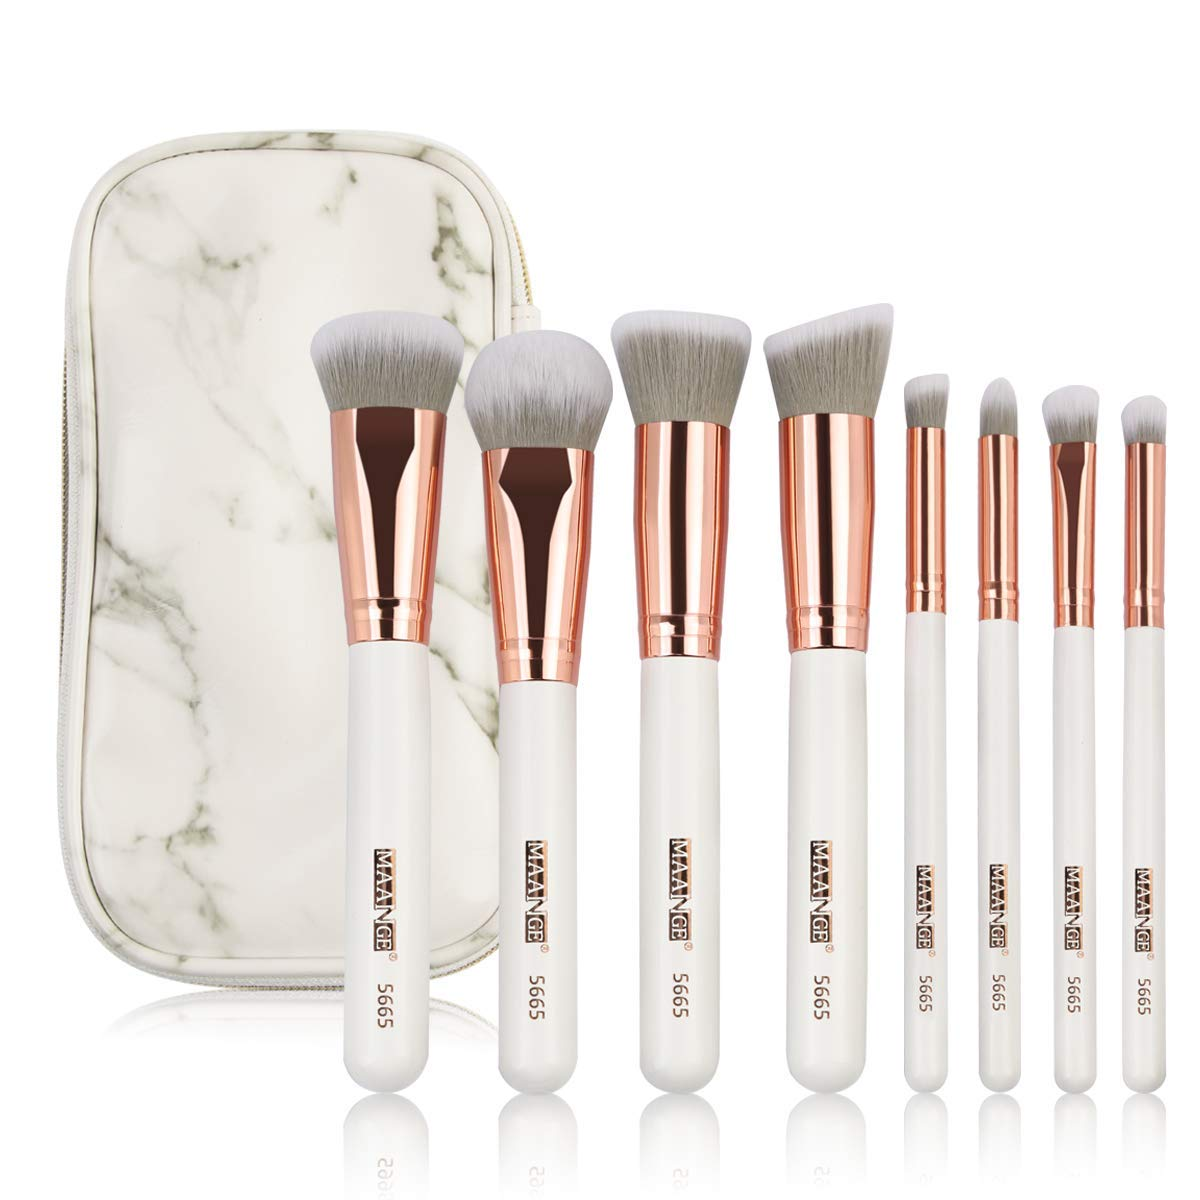 MAANGE Makeup Brushes Premium Luxury 8PCs Make Up Brushes Set With Professional PU Leather Makeup Brush Set Case Bag Kit for Foundation Blending Blush Concealer Eye Shadow(Rose Golden)